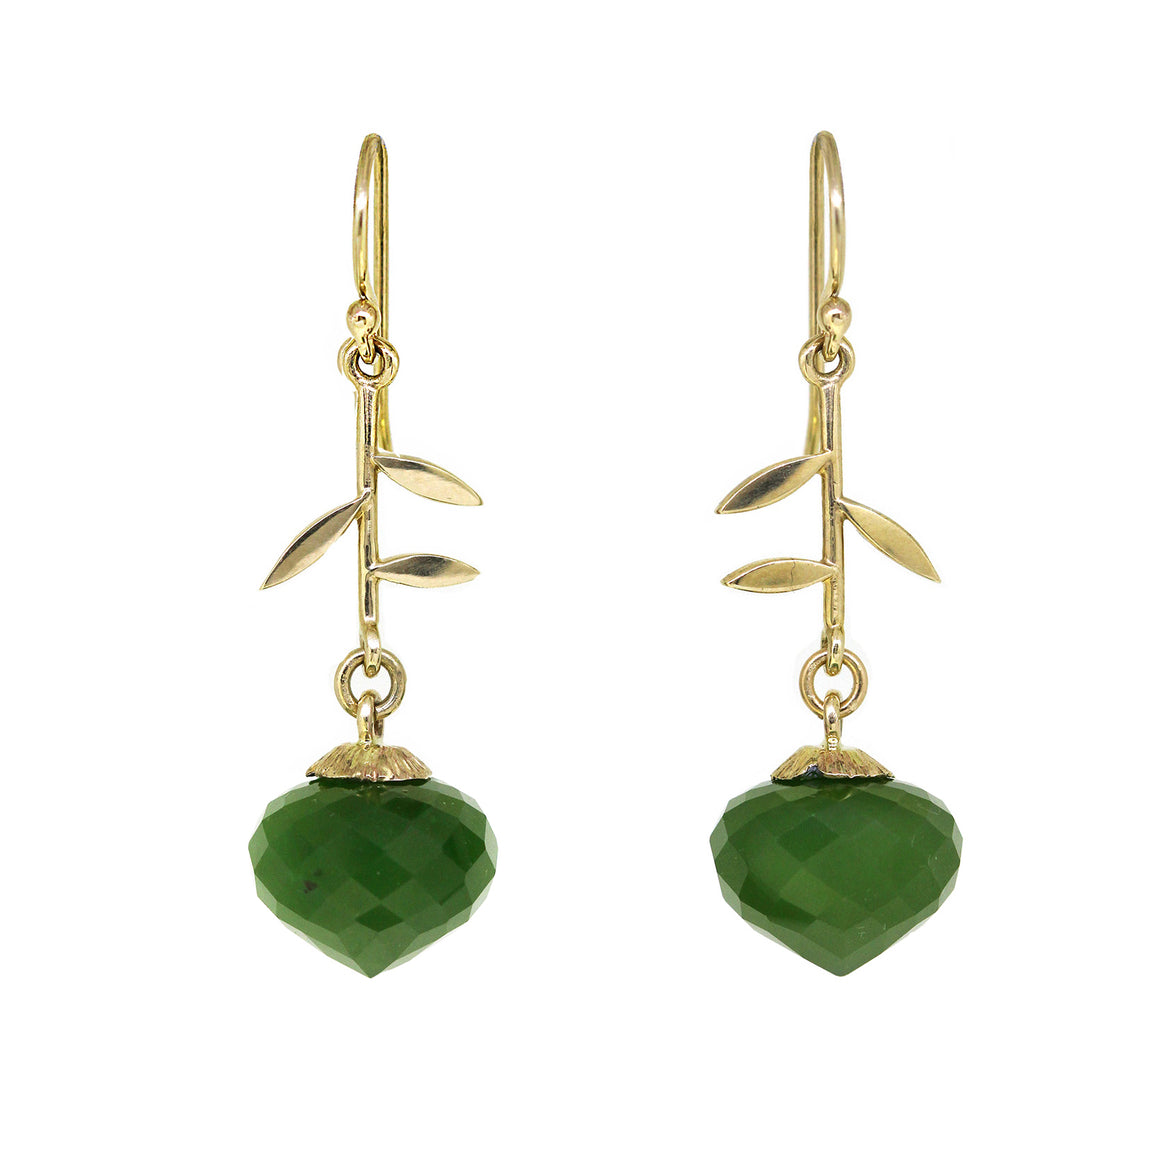 Jade Jardin earrings in gold